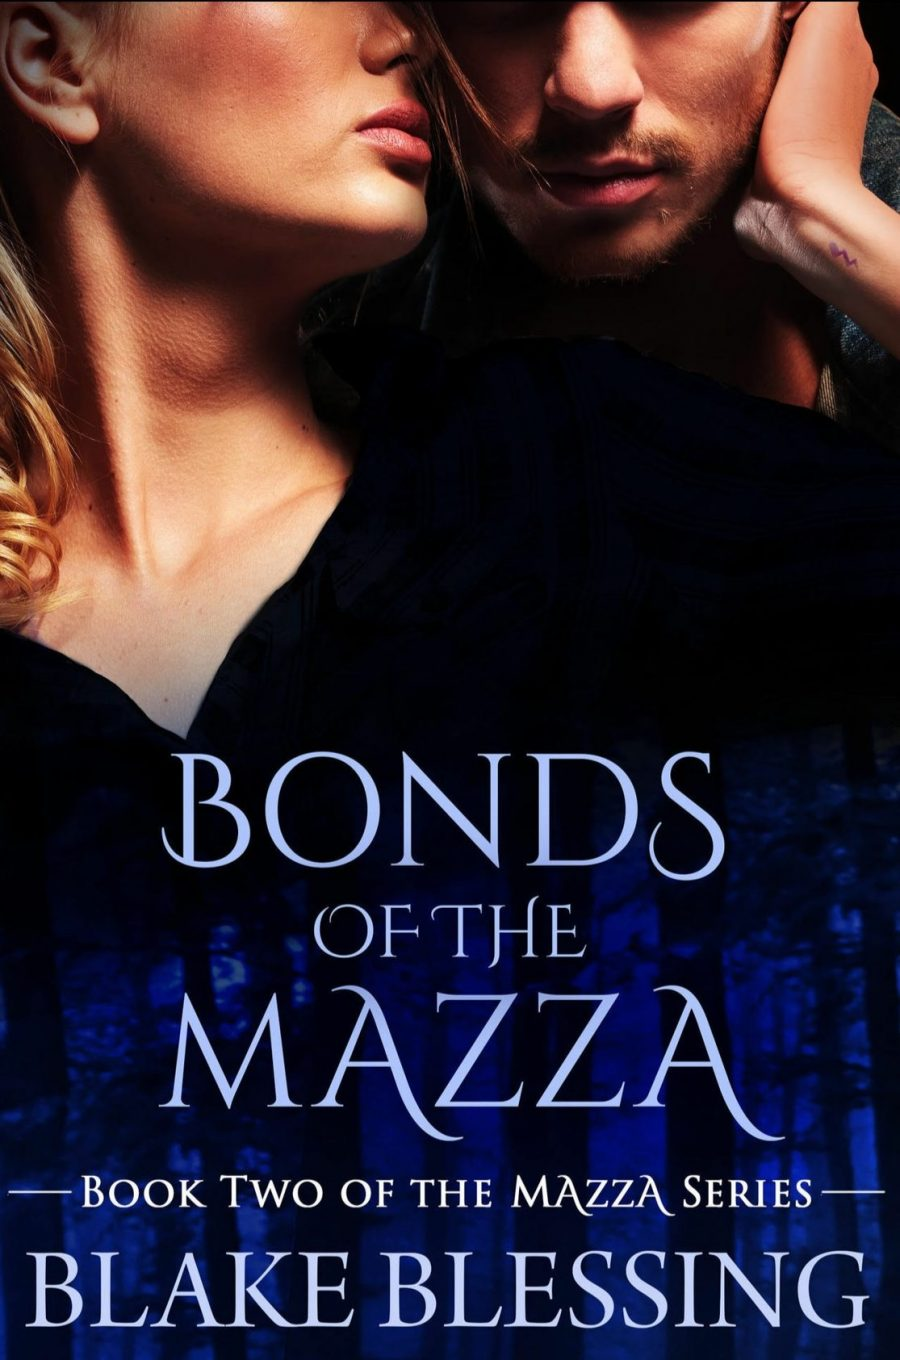 Bonds of the Mazza by Blake Blessing – A Book Review